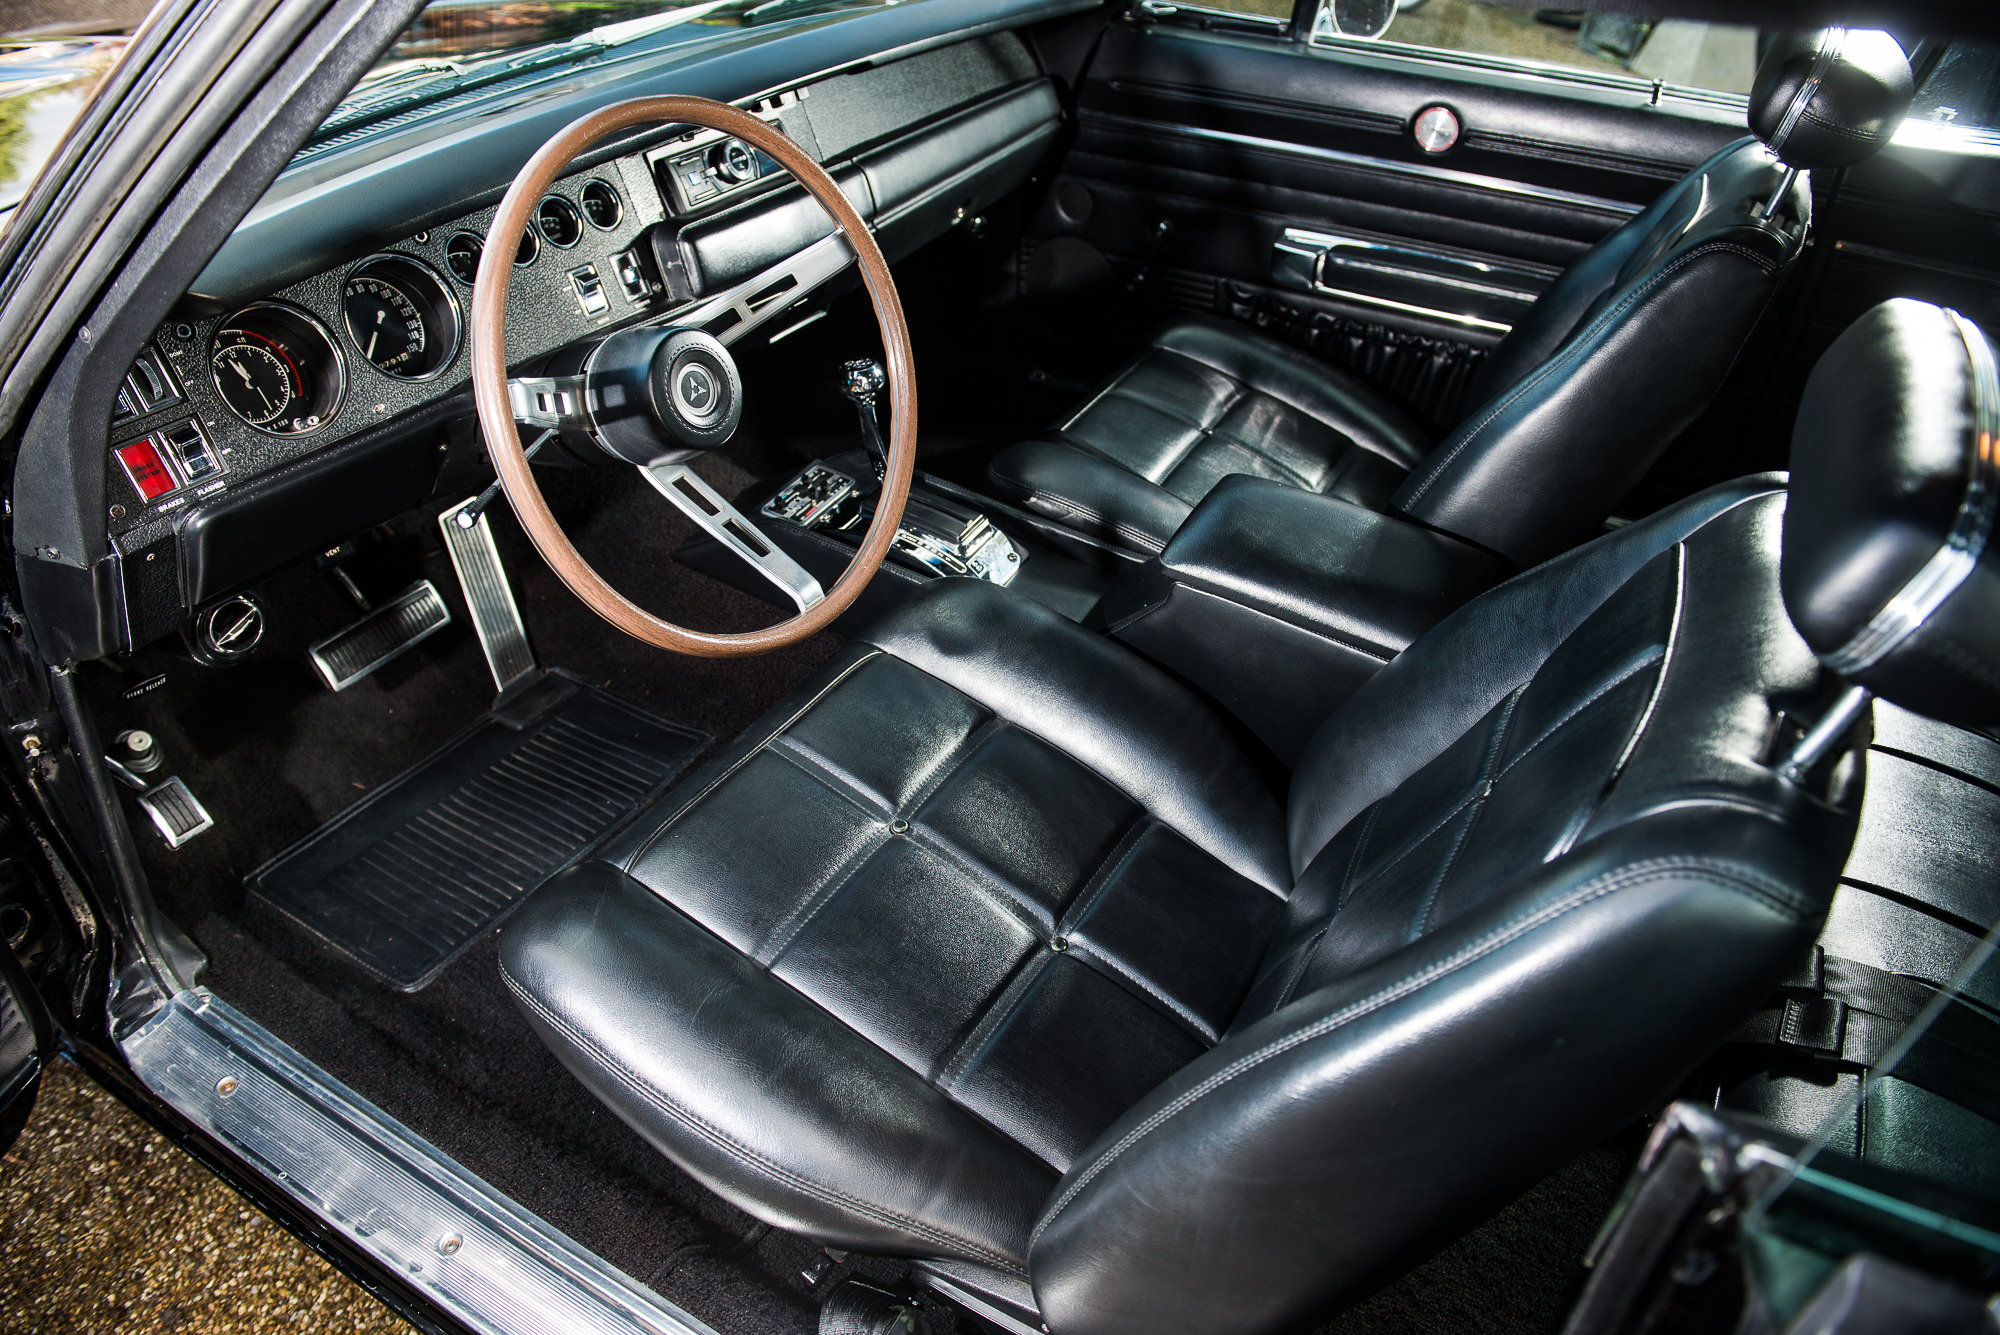 ex bruce willis ex jay kay 1969 bullitt spec dodge charger. Black Bedroom Furniture Sets. Home Design Ideas